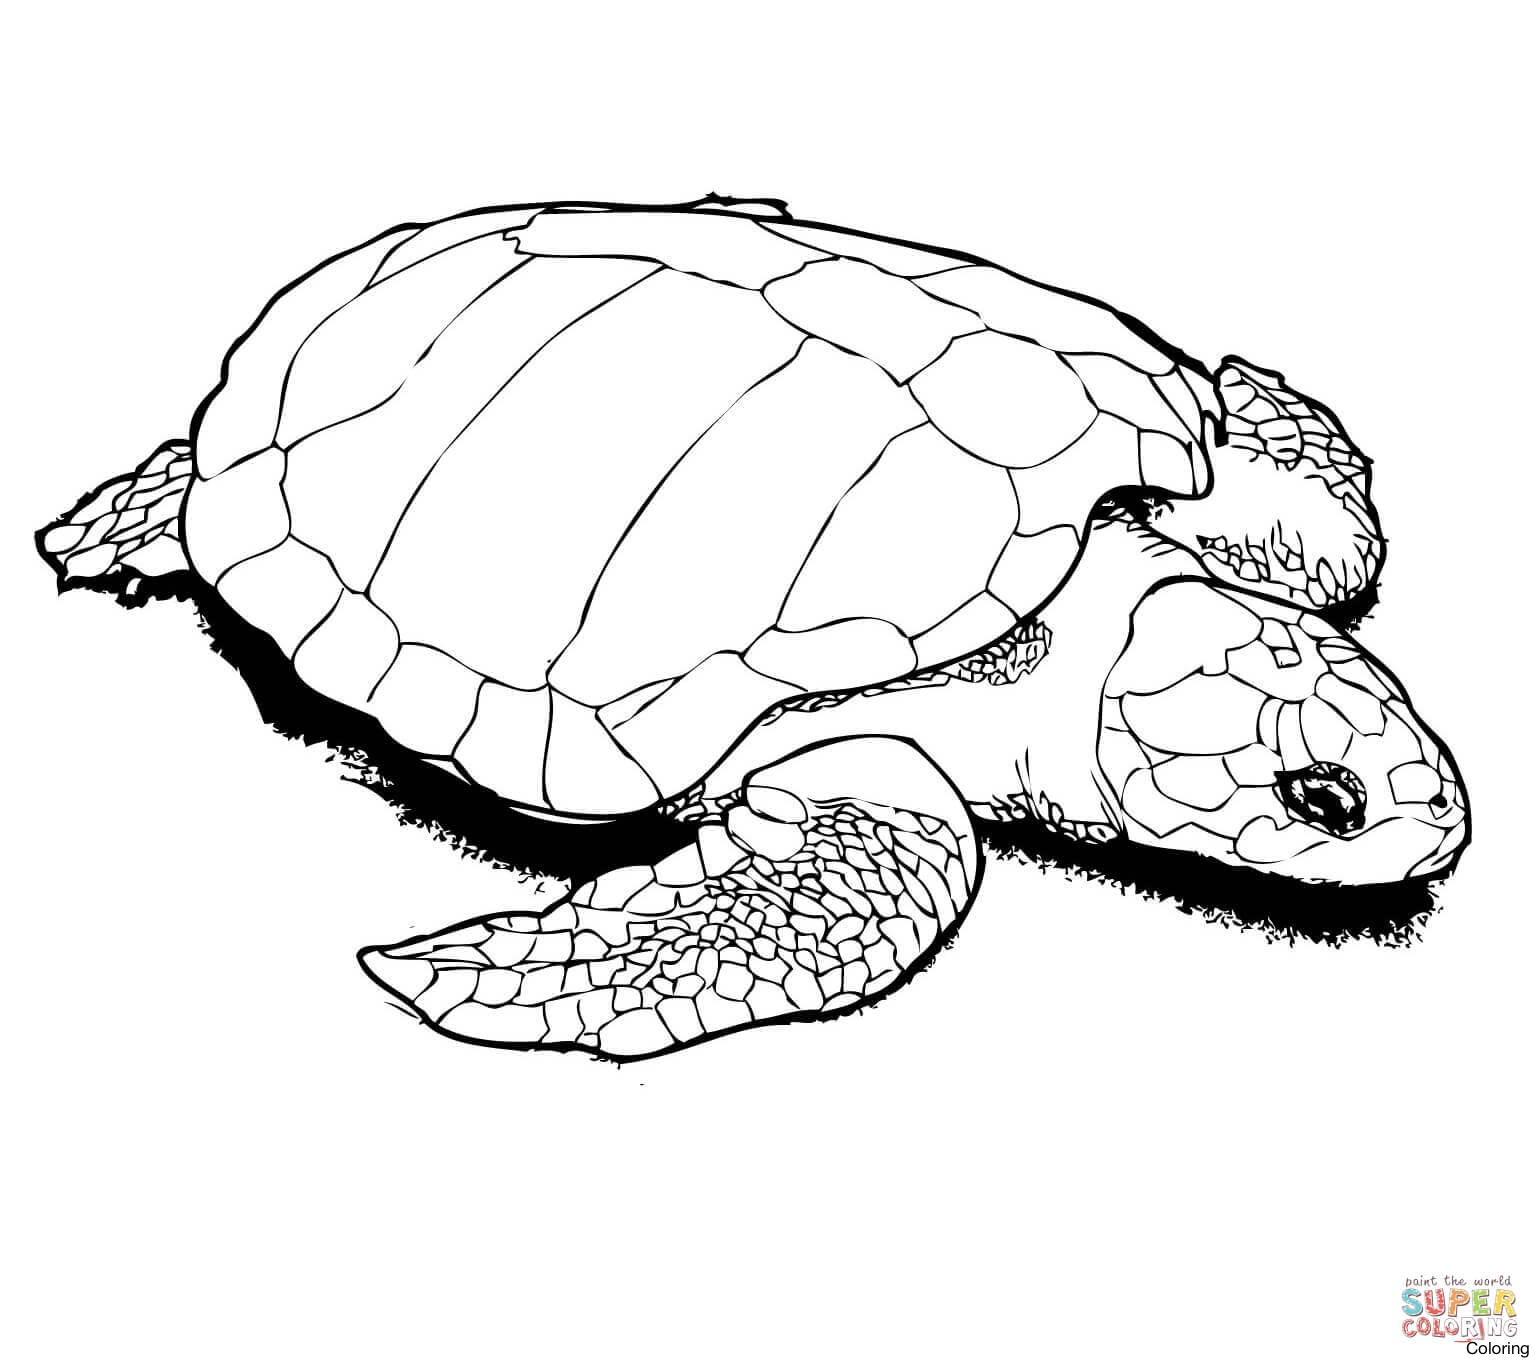 1540x1364 Brilliant Ideas Turtles Coloring Pages In Sea Turtle Itgod Me Page